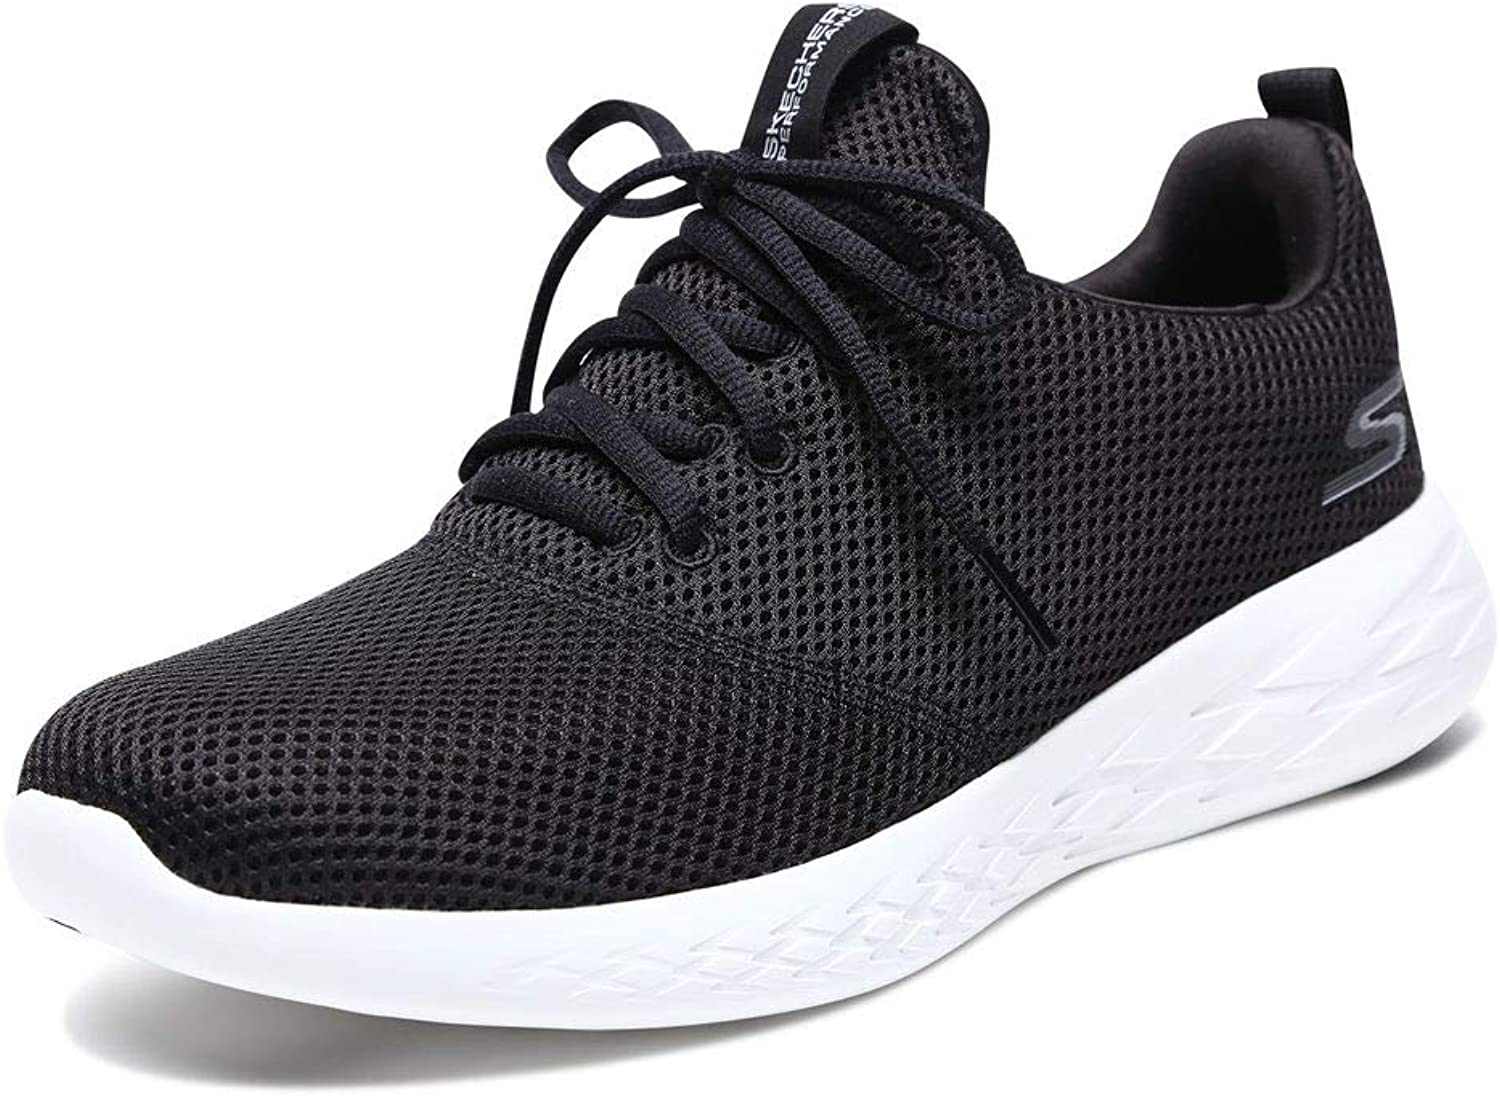 Skechers Men's Men's Men's Go Run 600 55076 Sneaker, Black/White, 9.5 M US B0792L7T54  cb8c1b